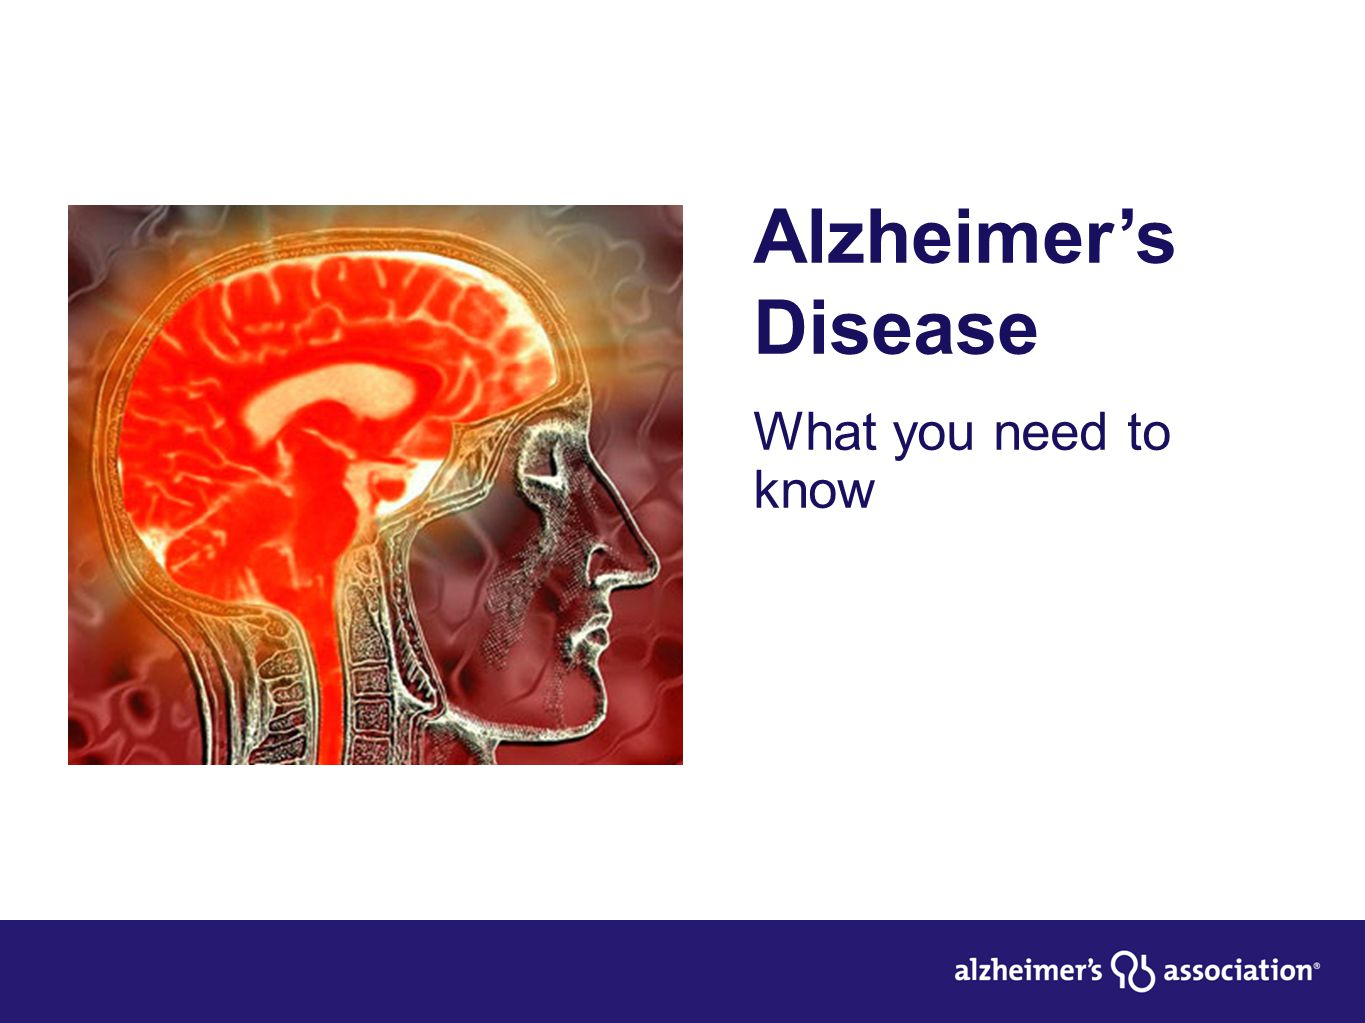 Alzheimer's Disease What you need to know